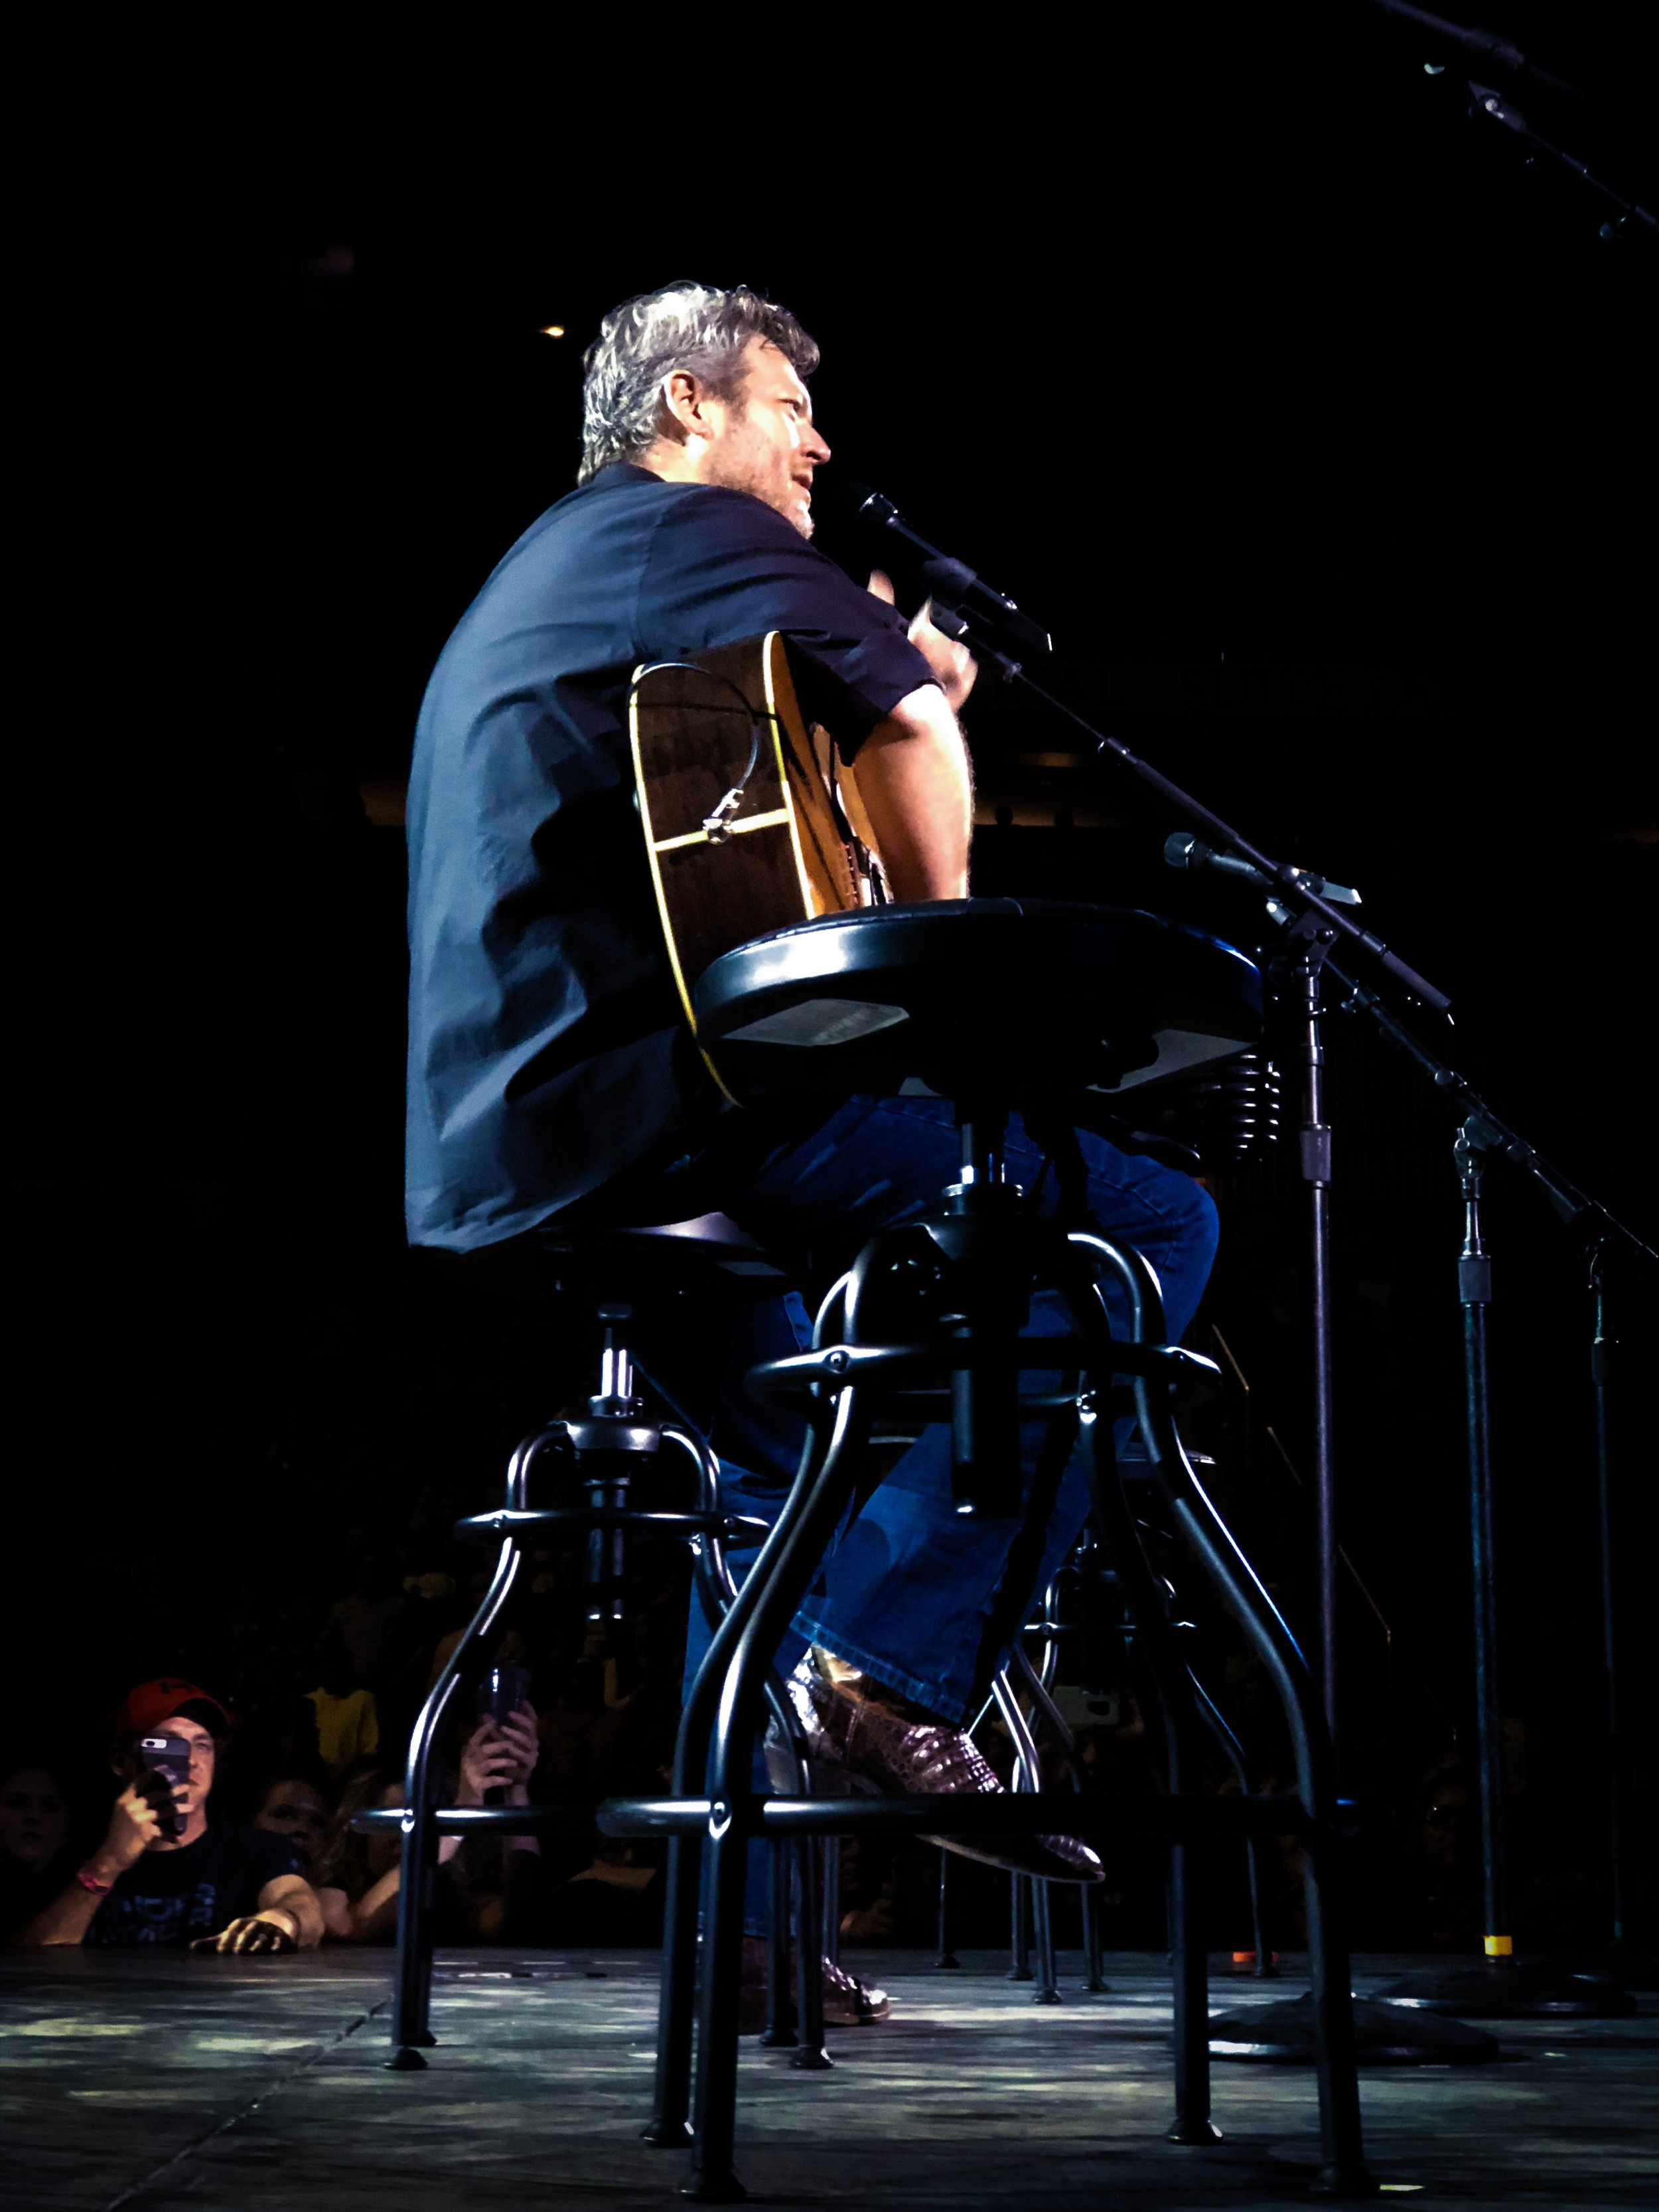 """Blake closes his set with """"Austin"""" - his 2001 debut record that launched him into super stardom. While he's a global phenomenon, Blake is still rooted in tradition and doesn't forget about the song that got him where he is today."""